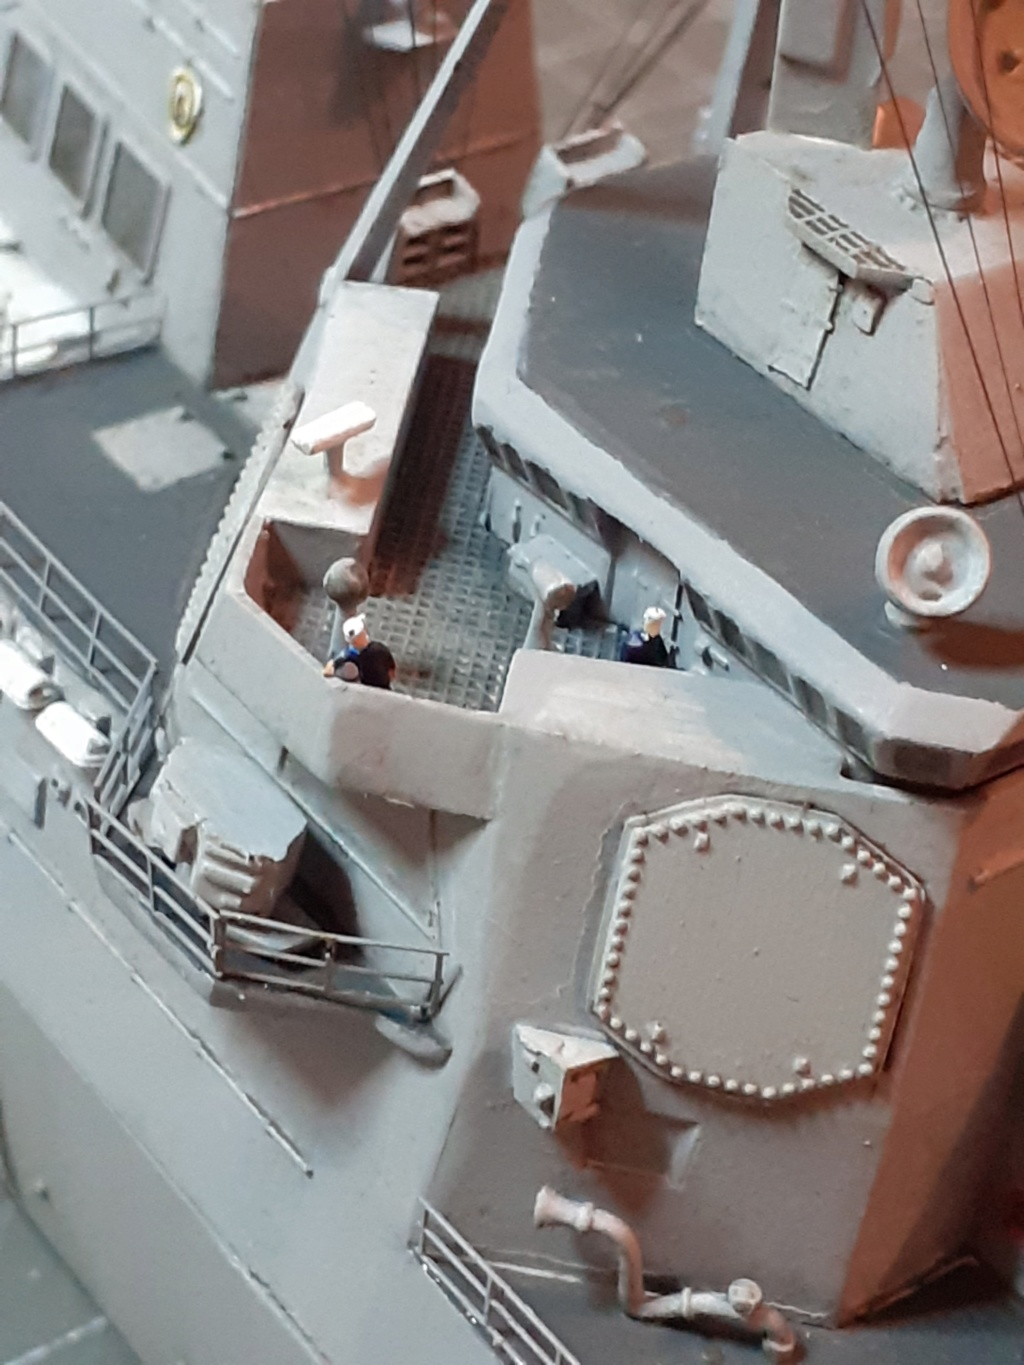 « Rapide et Craint » - Destroyer Lance Missiles USS Arleigh Burke (Trumpeter - 1/350) - Page 2 20200232